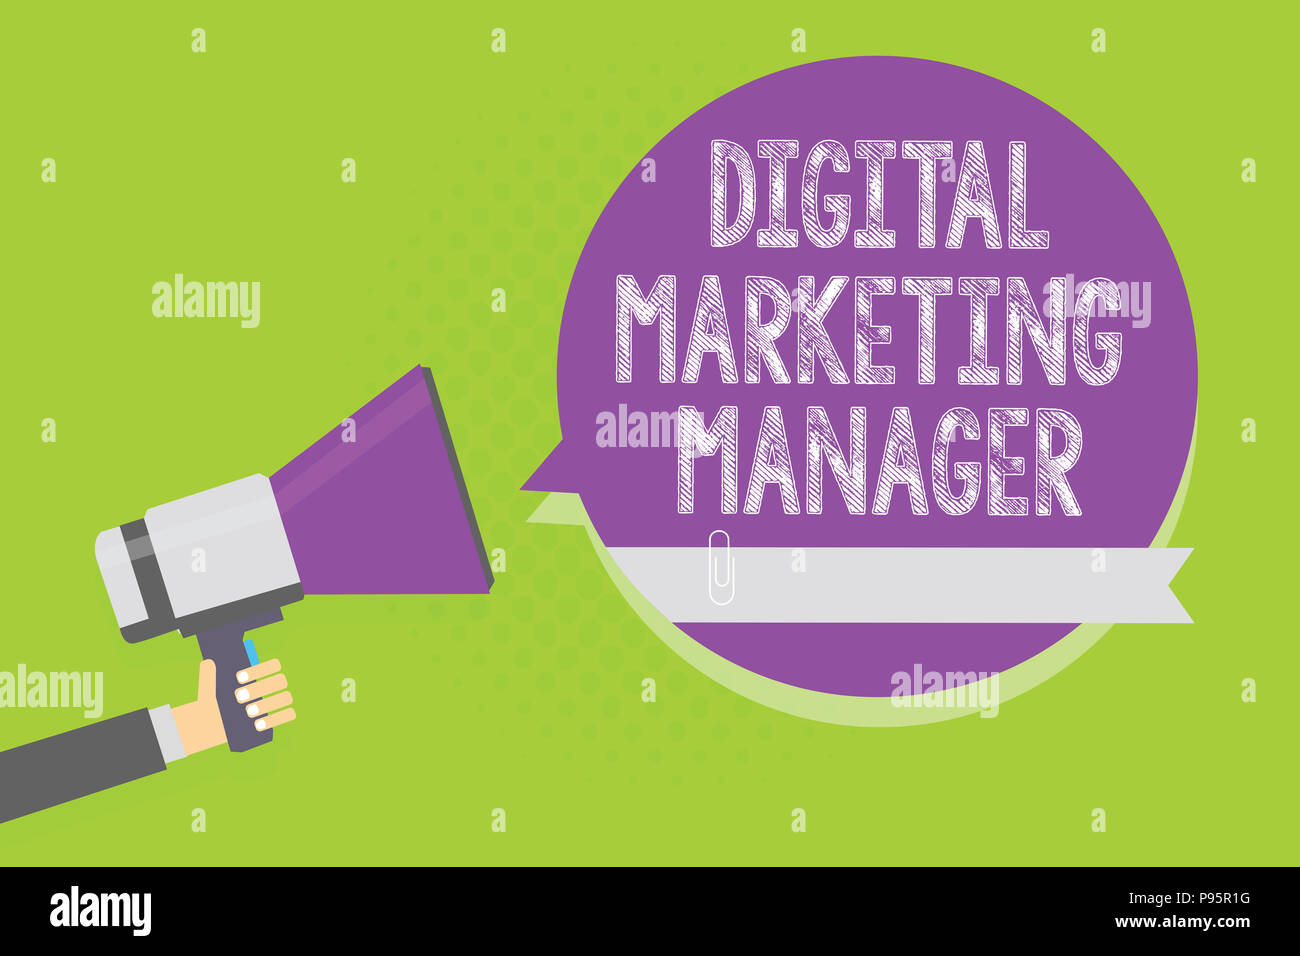 Word writing text Digital Marketing Manager. Business concept for optimized for posting in online boards or careers Man holding megaphone loudspeaker  - Stock Image